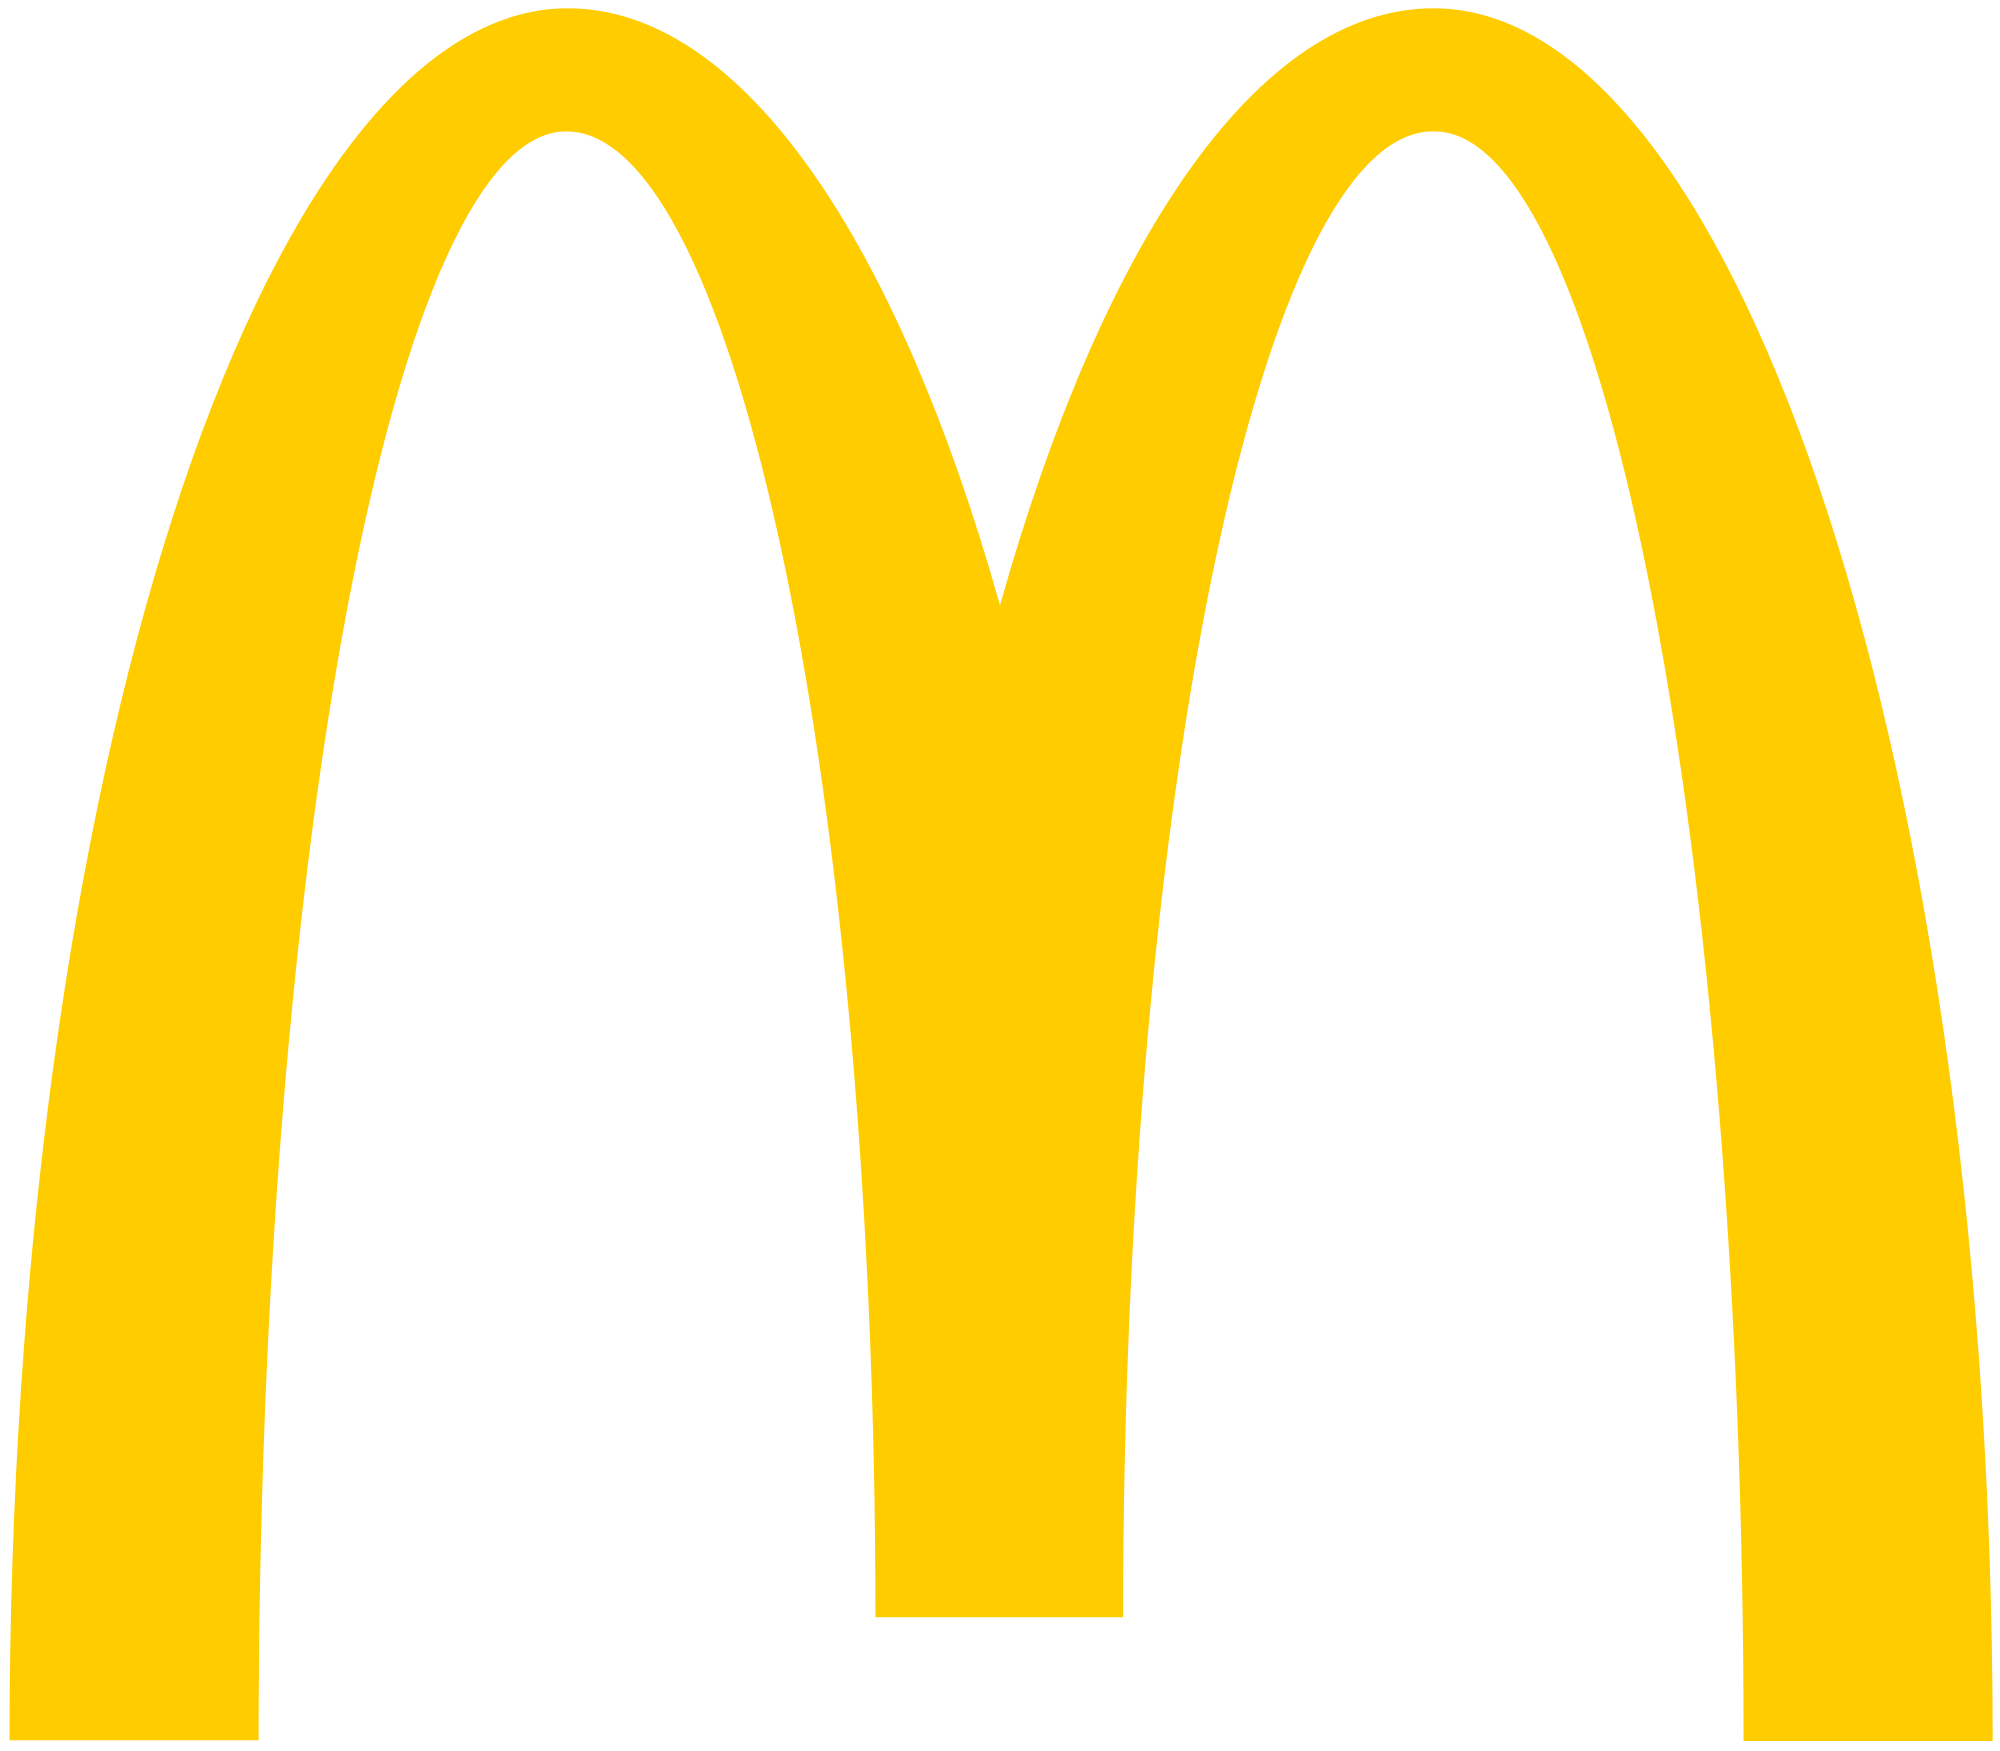 McDonalds - Presentation Development